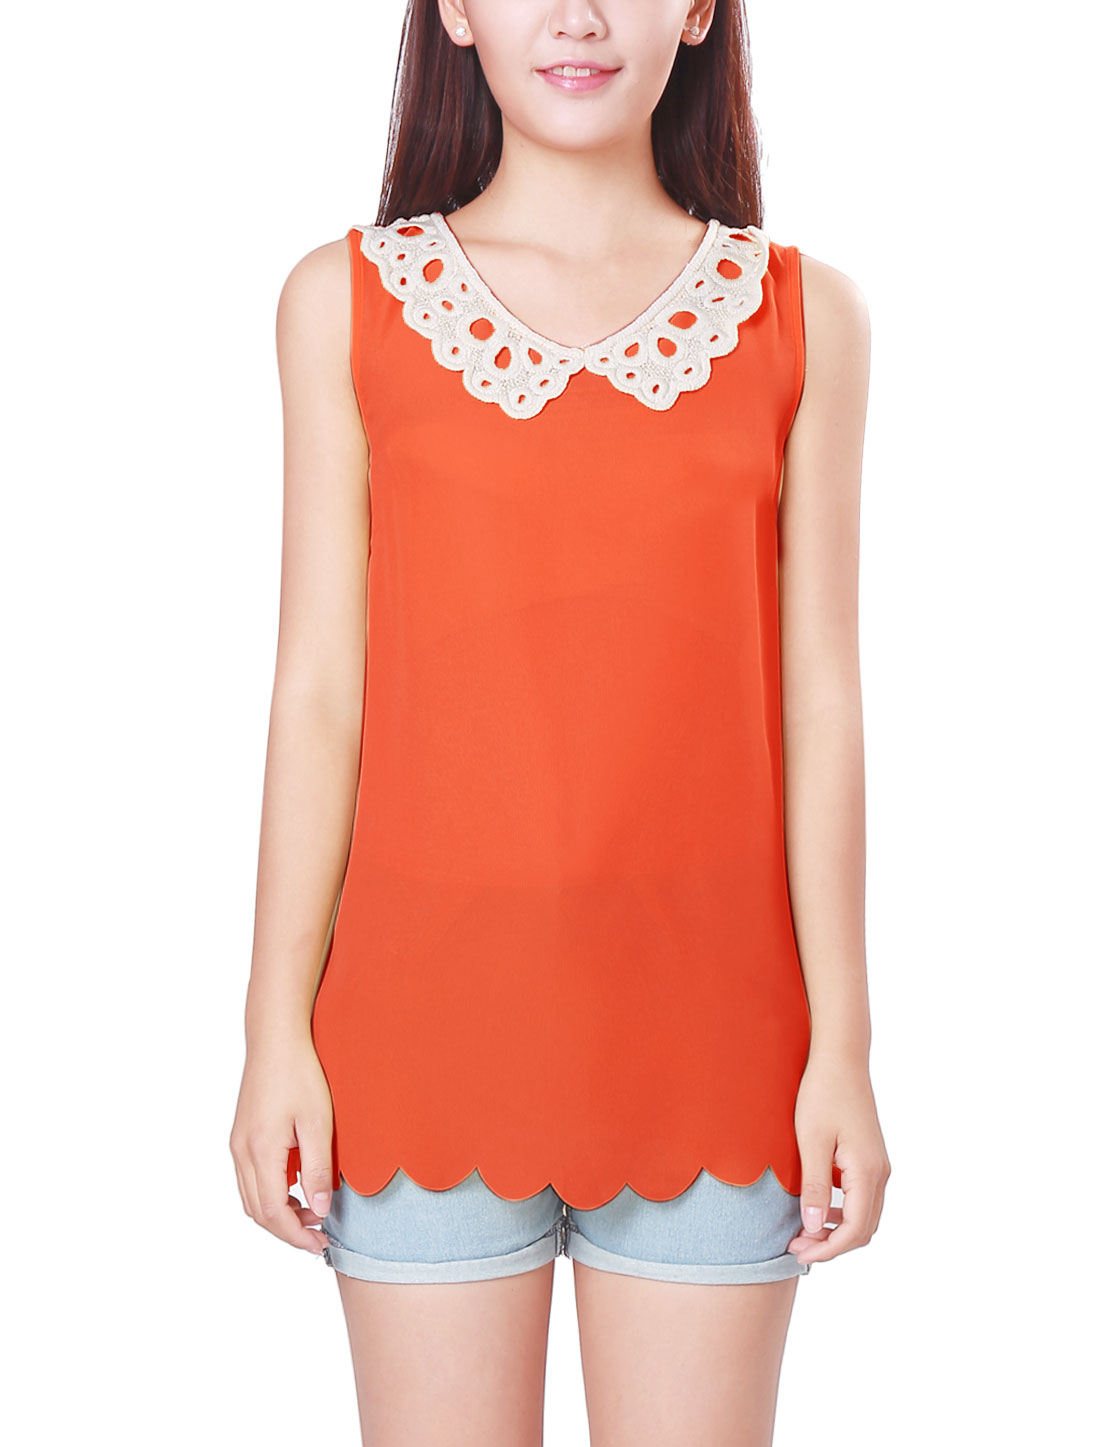 Stylish Watermelon Red Color Crochet Doll Collar Tank Top for Lady XS